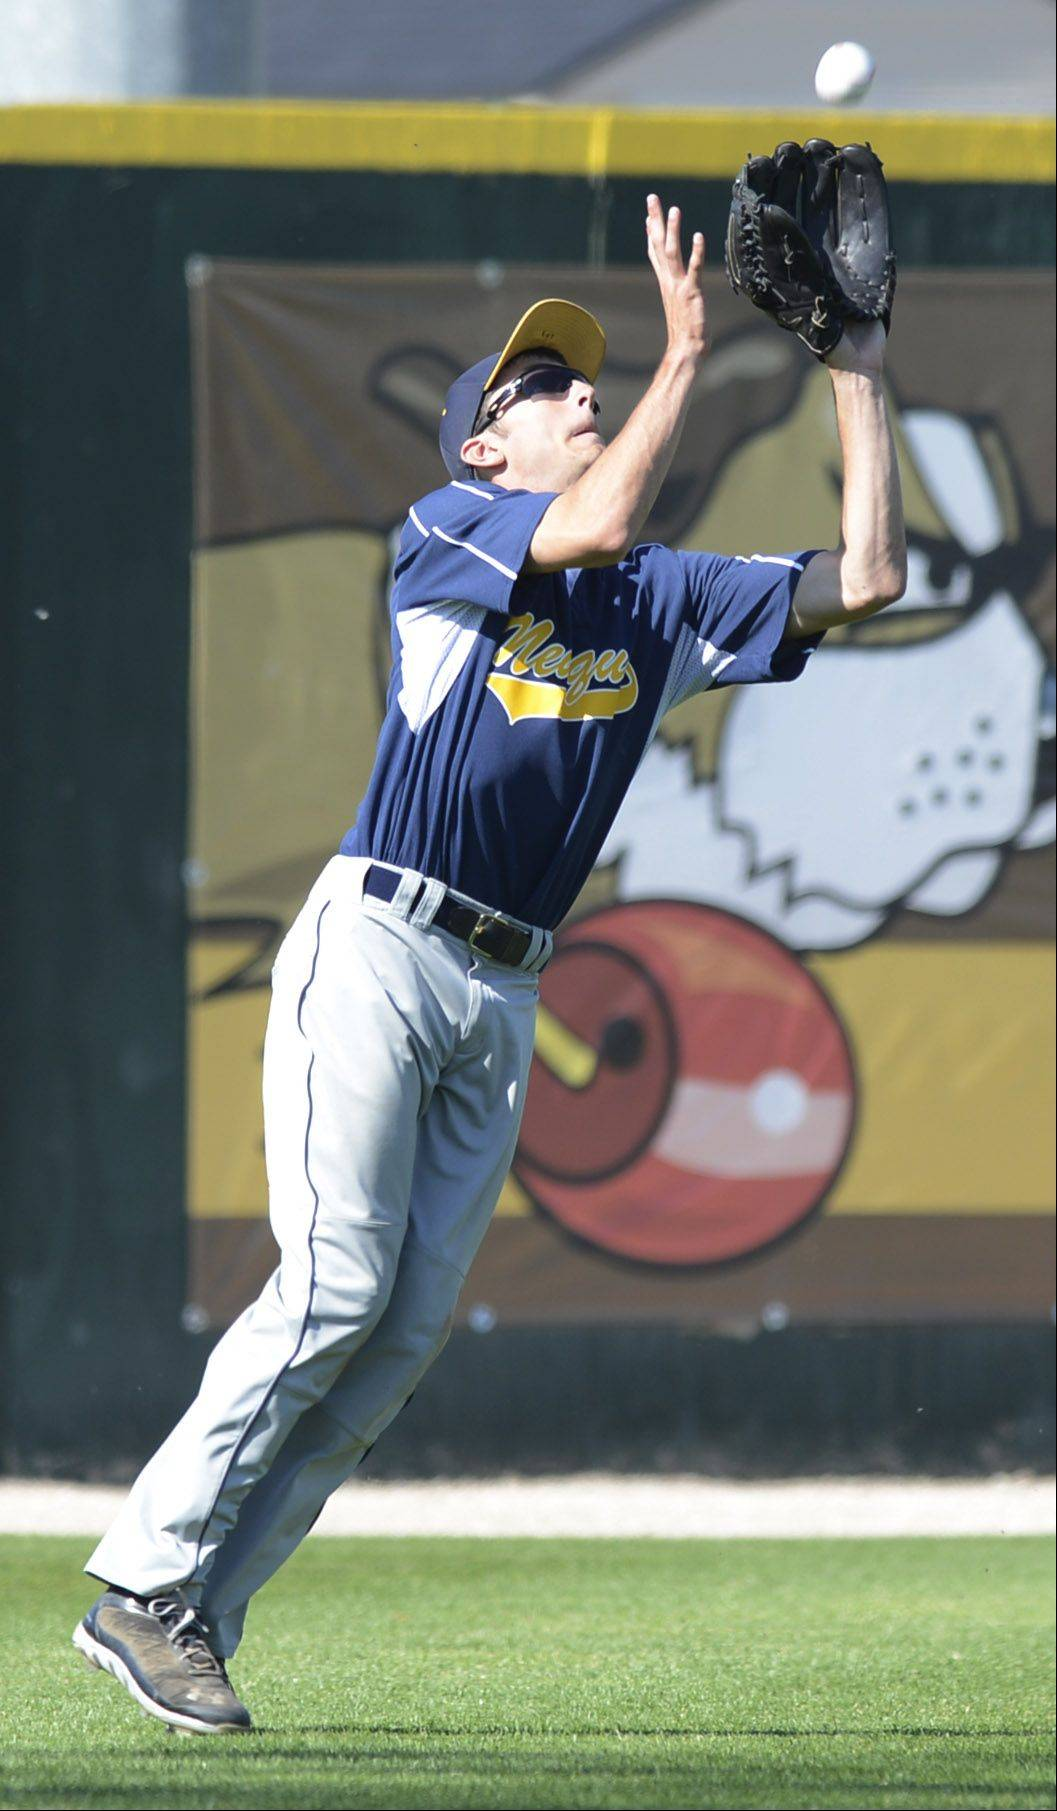 Neuqua Valley's Josh Piotrowski catches a fly ball during Friday's Class 4A state baseball semifinal game against Mt. Carmel at Silver Cross Field in Joliet.